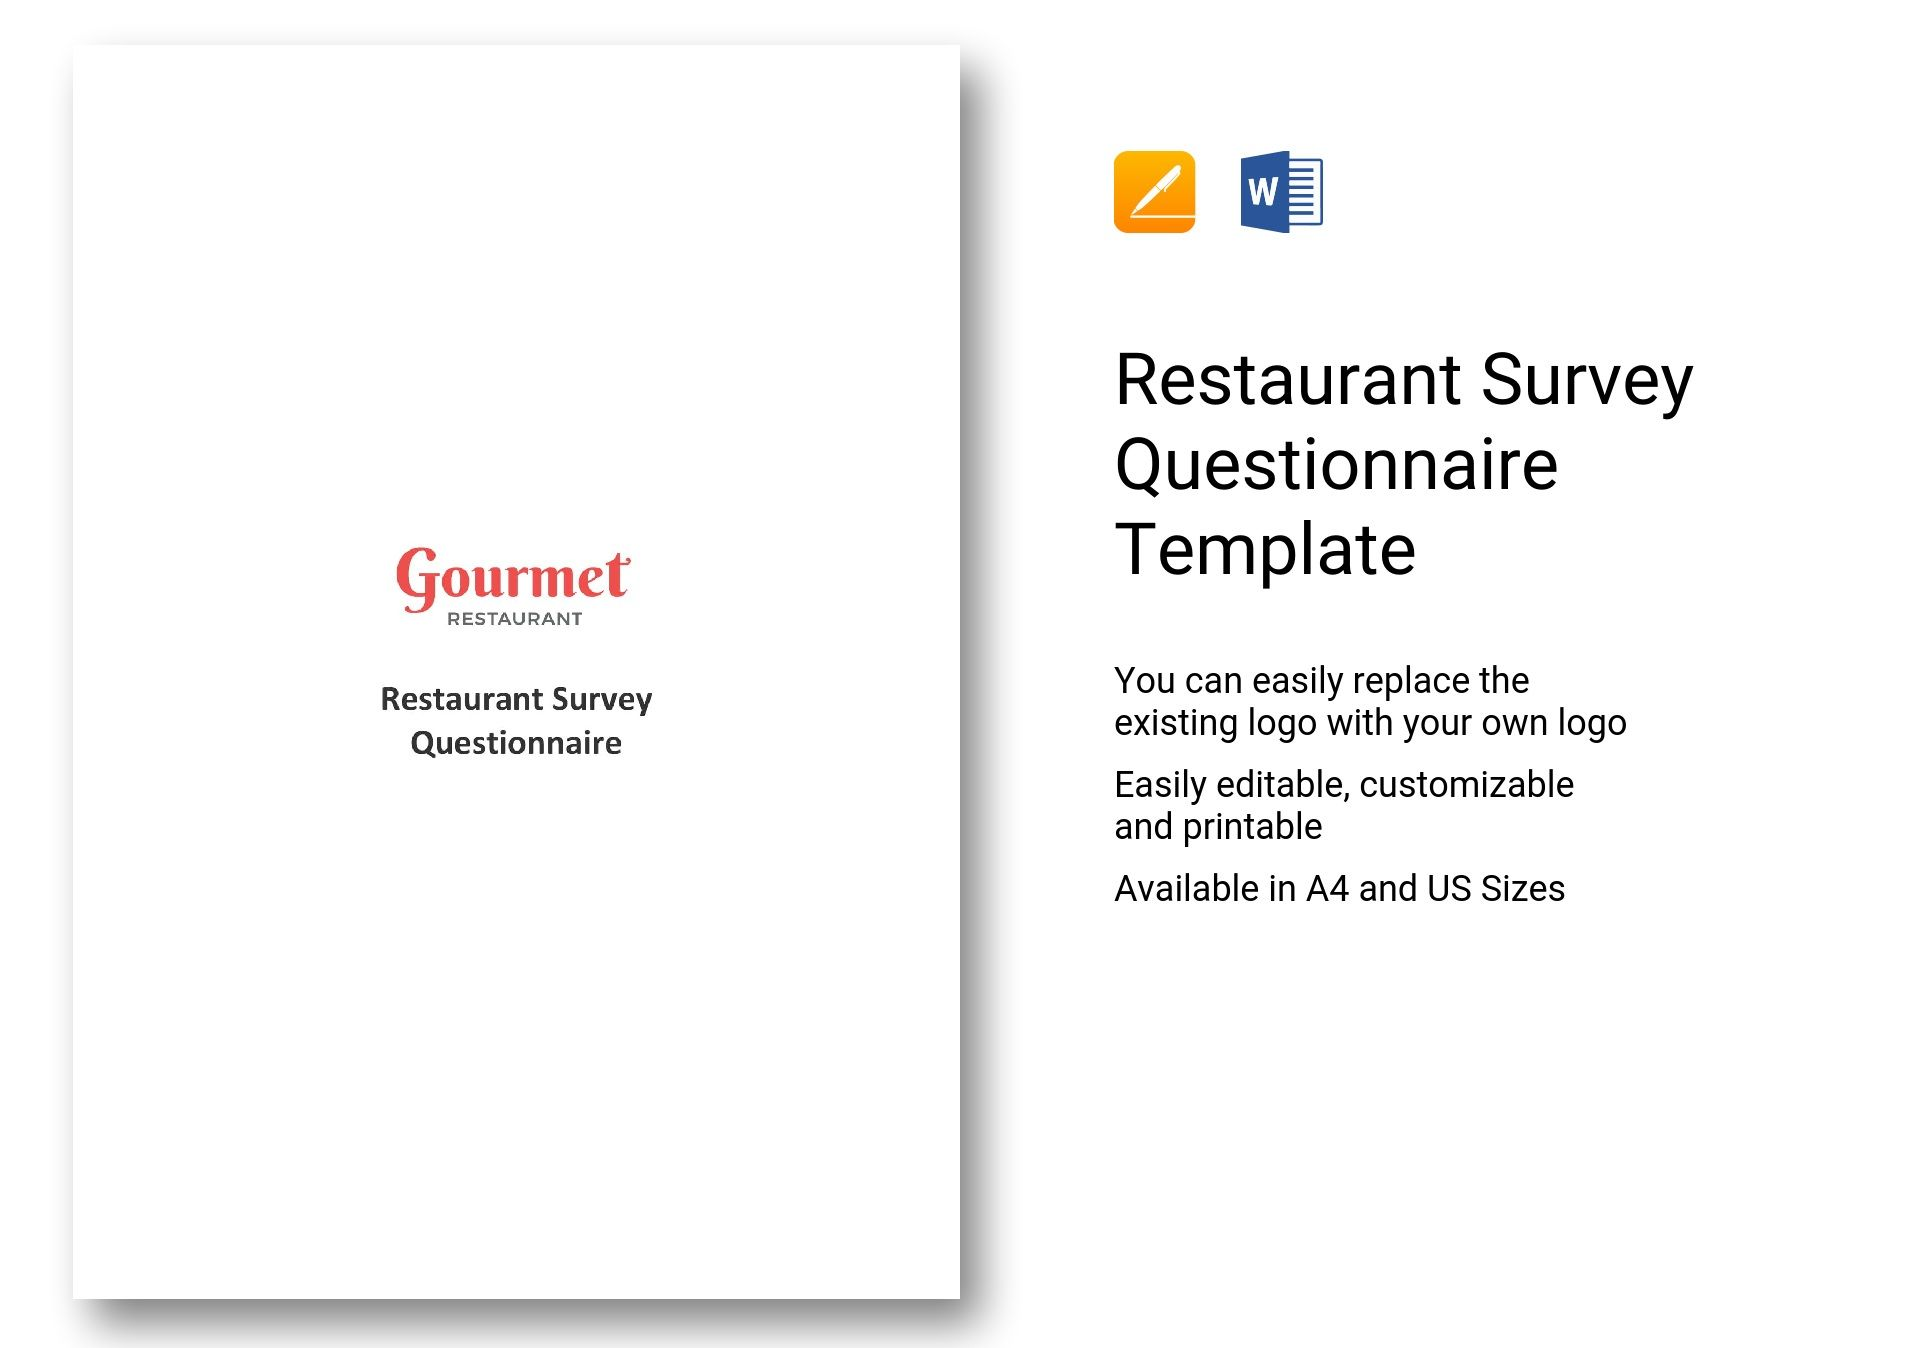 restaurant survey questionnaire template in word apple pages